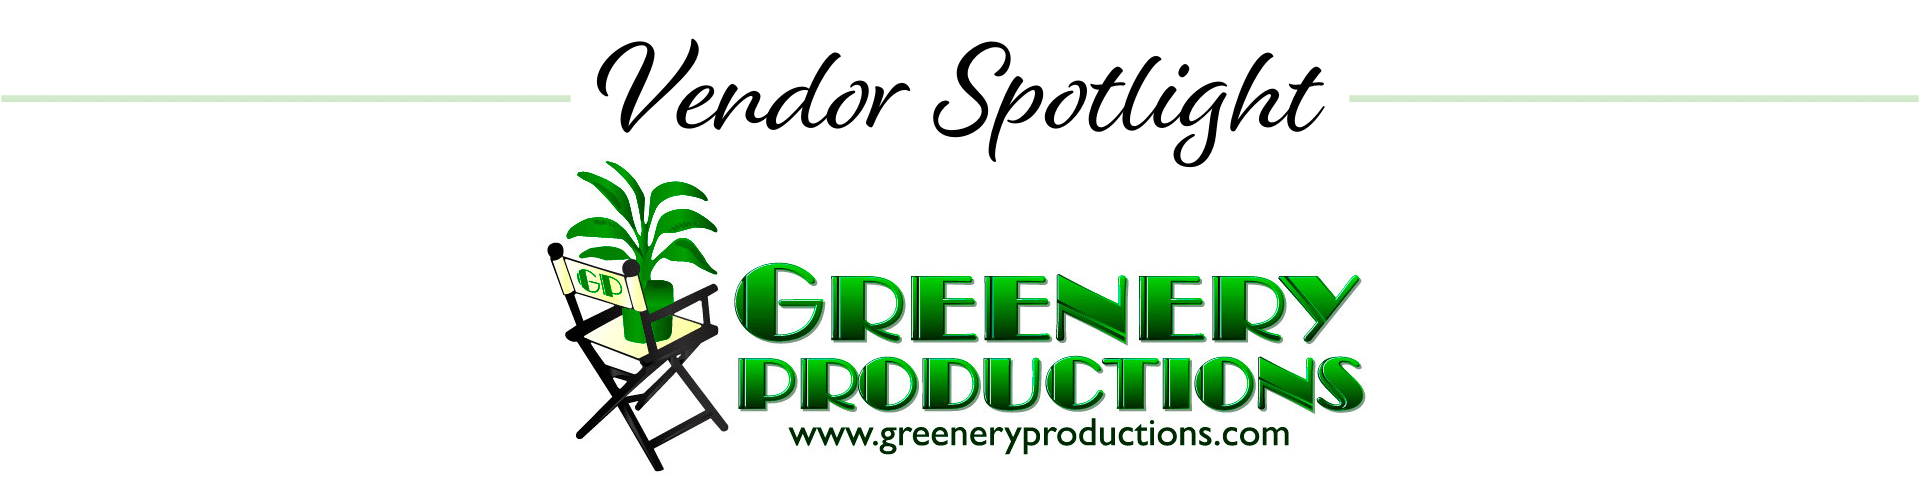 Greenery Productions logo